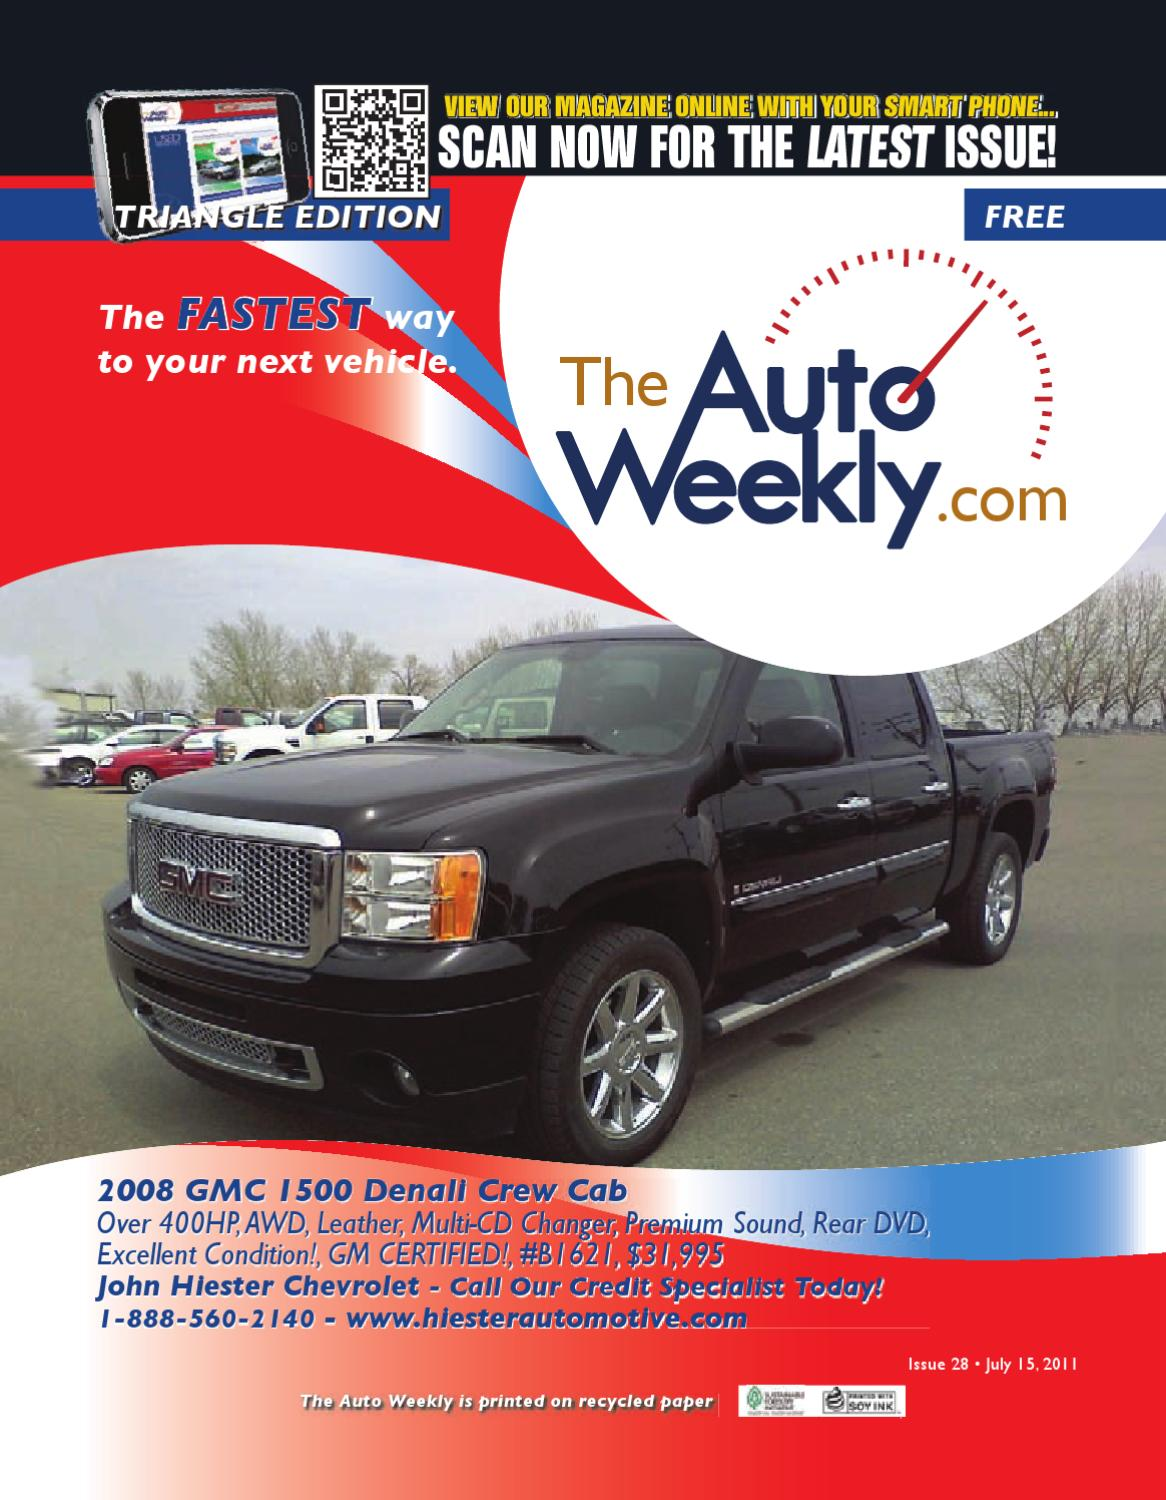 Issue 1128a Triangle Edition The Auto Weekly by The Auto Weekly - issuu